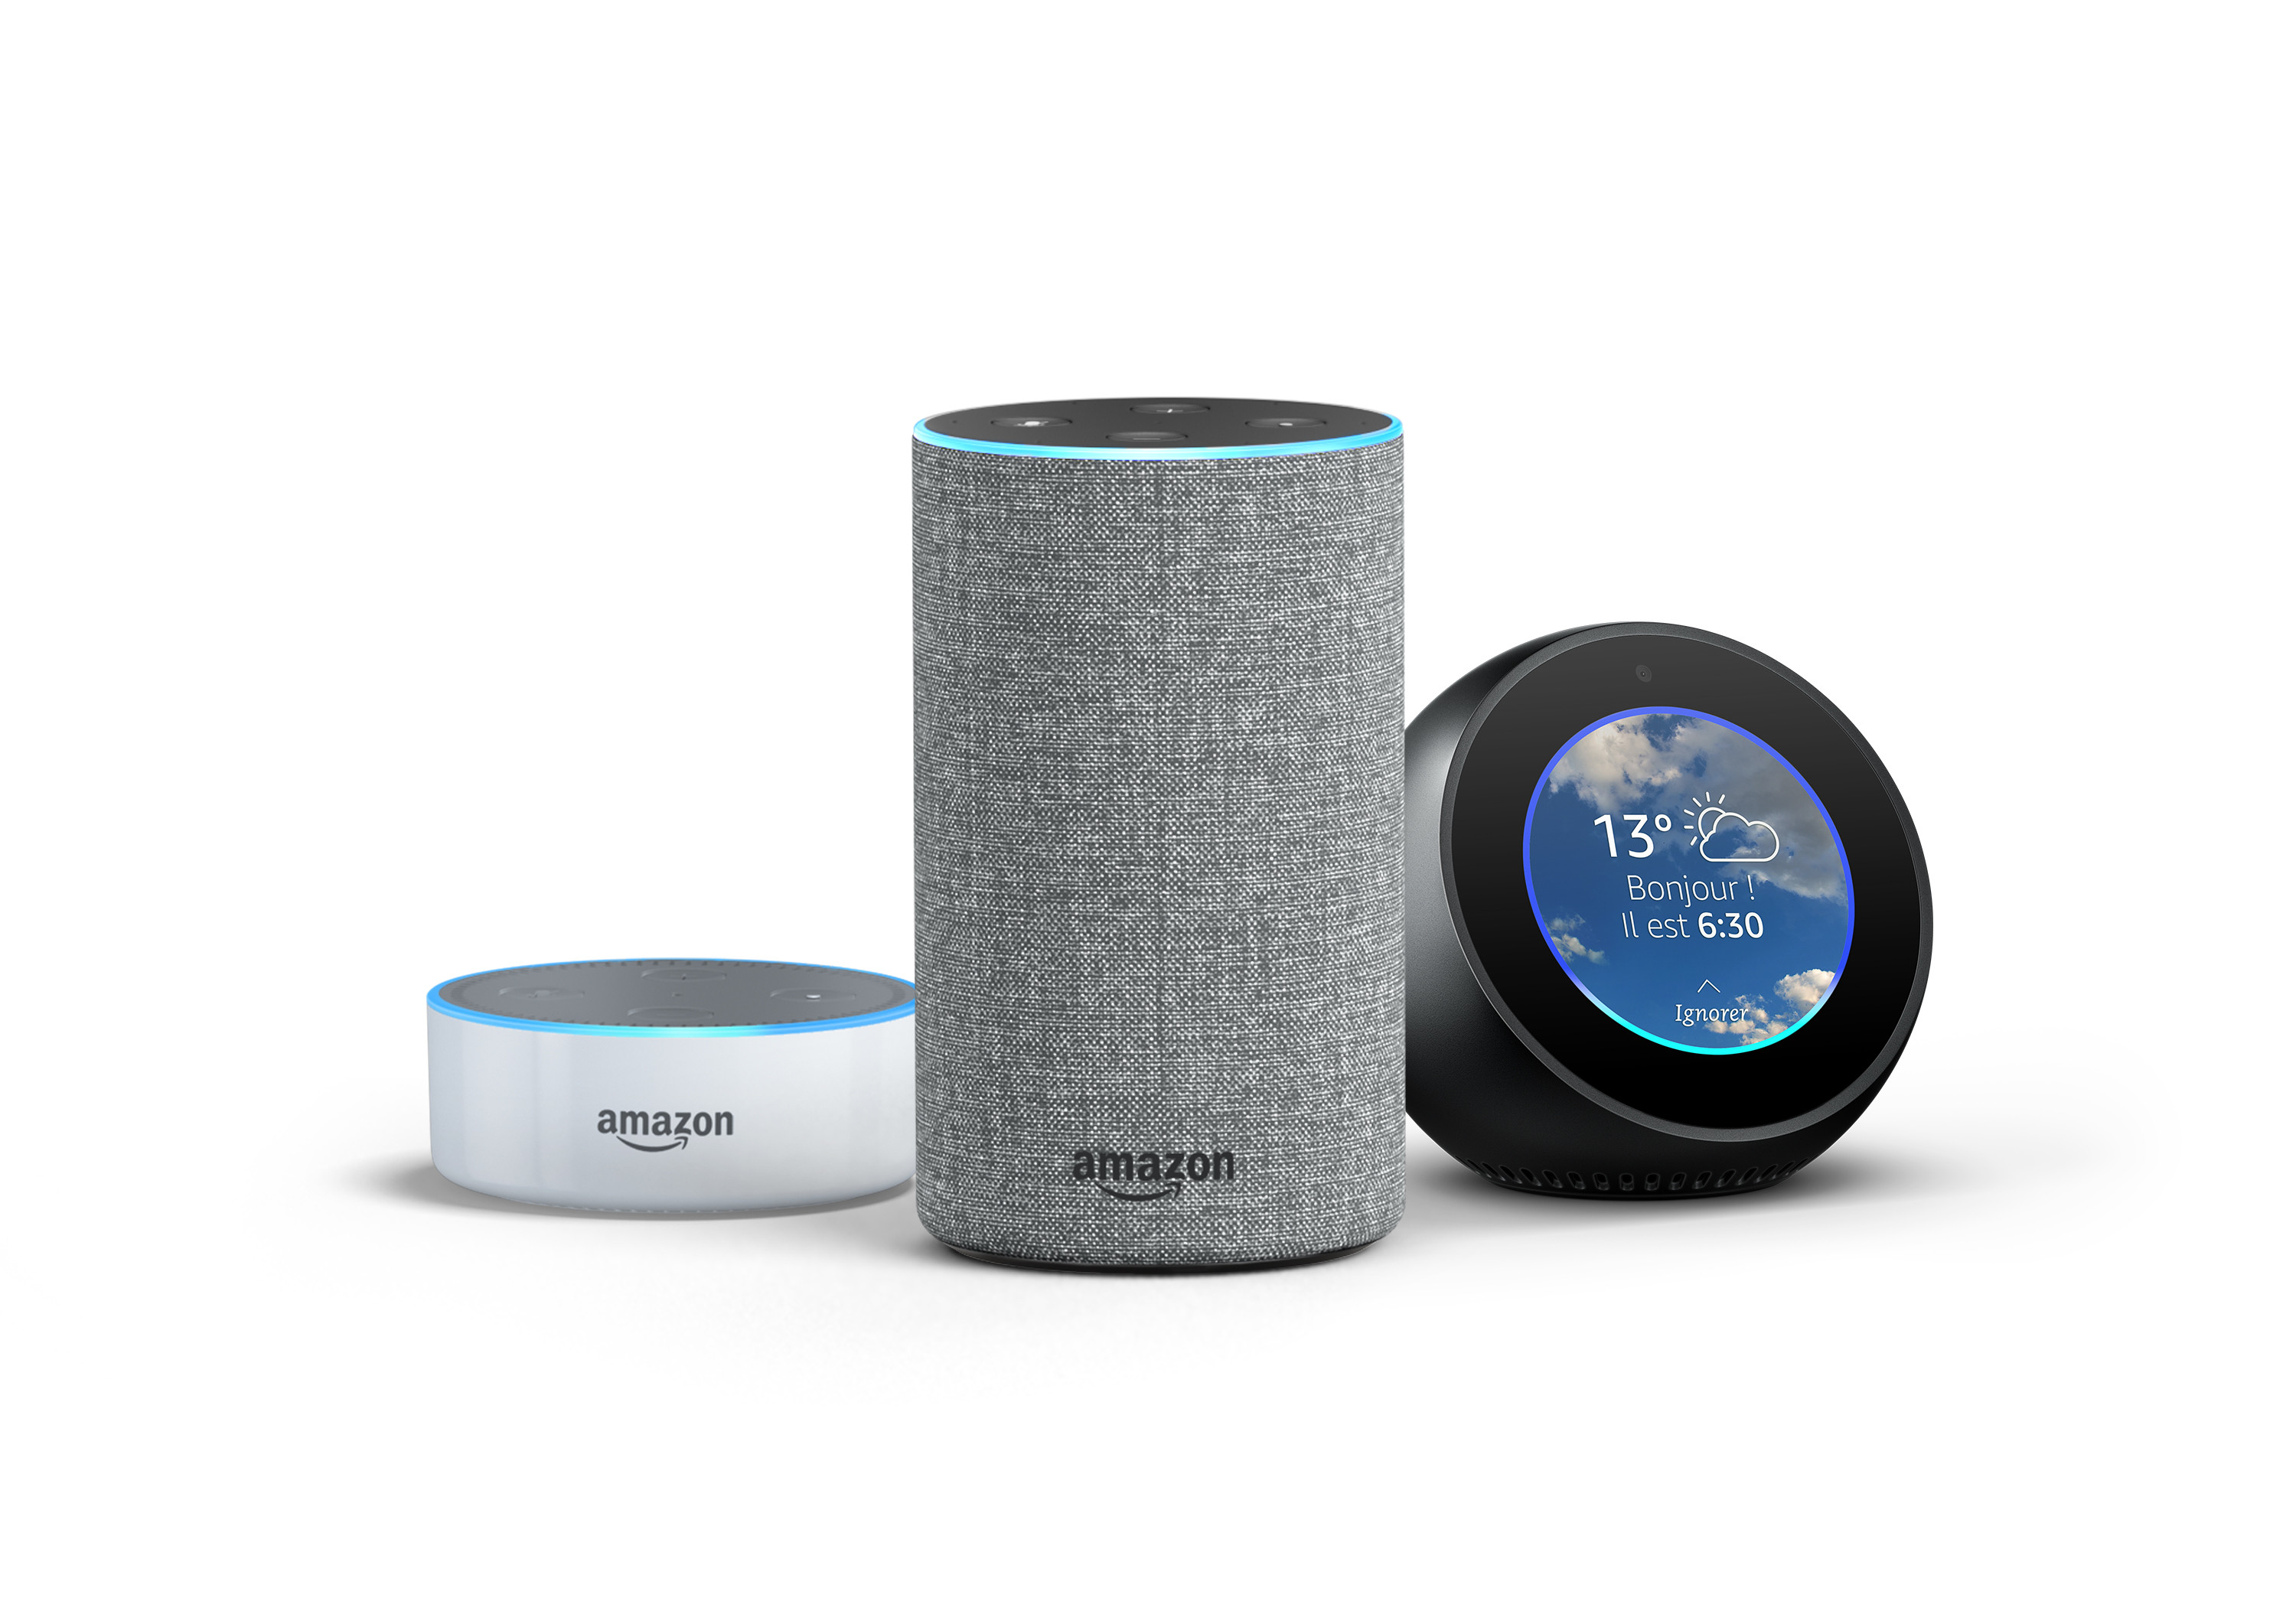 amazon lance alexa et sa gamme echo en france france actu. Black Bedroom Furniture Sets. Home Design Ideas